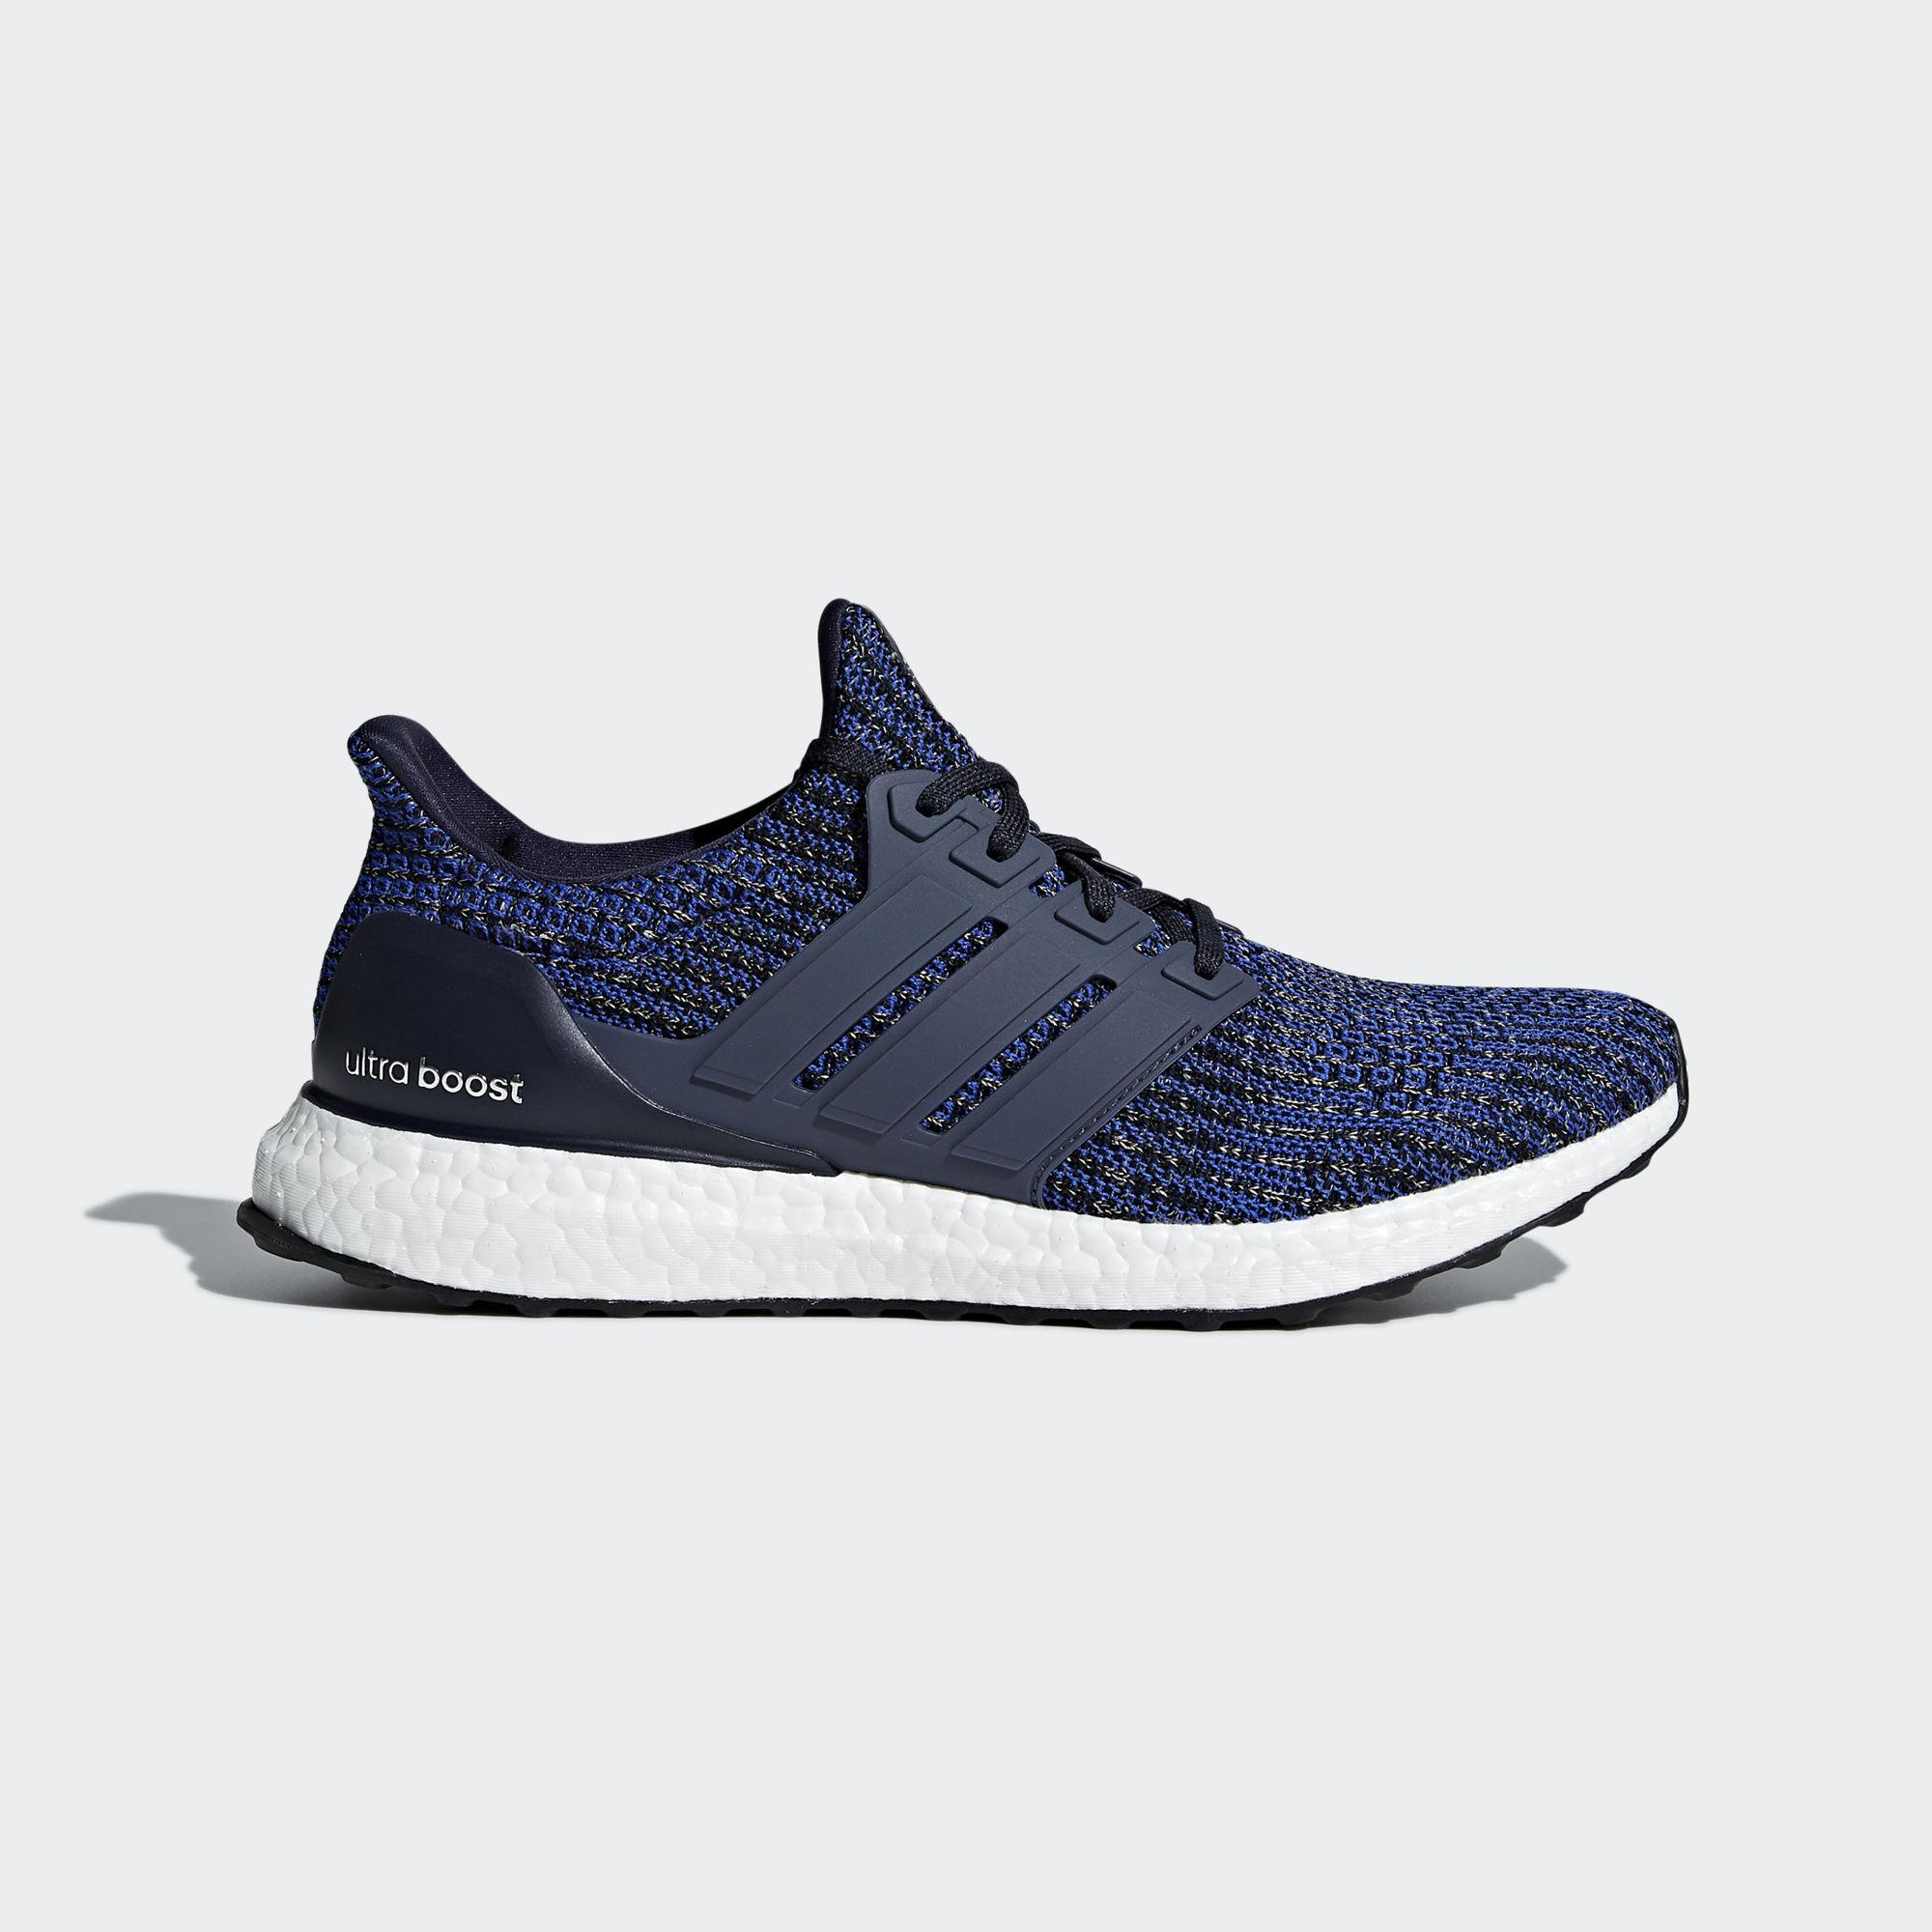 b20bbb370662 Adidas Mens Ultra Boost Running Shoes - Carbon Legend Ink - Tennisnuts.com